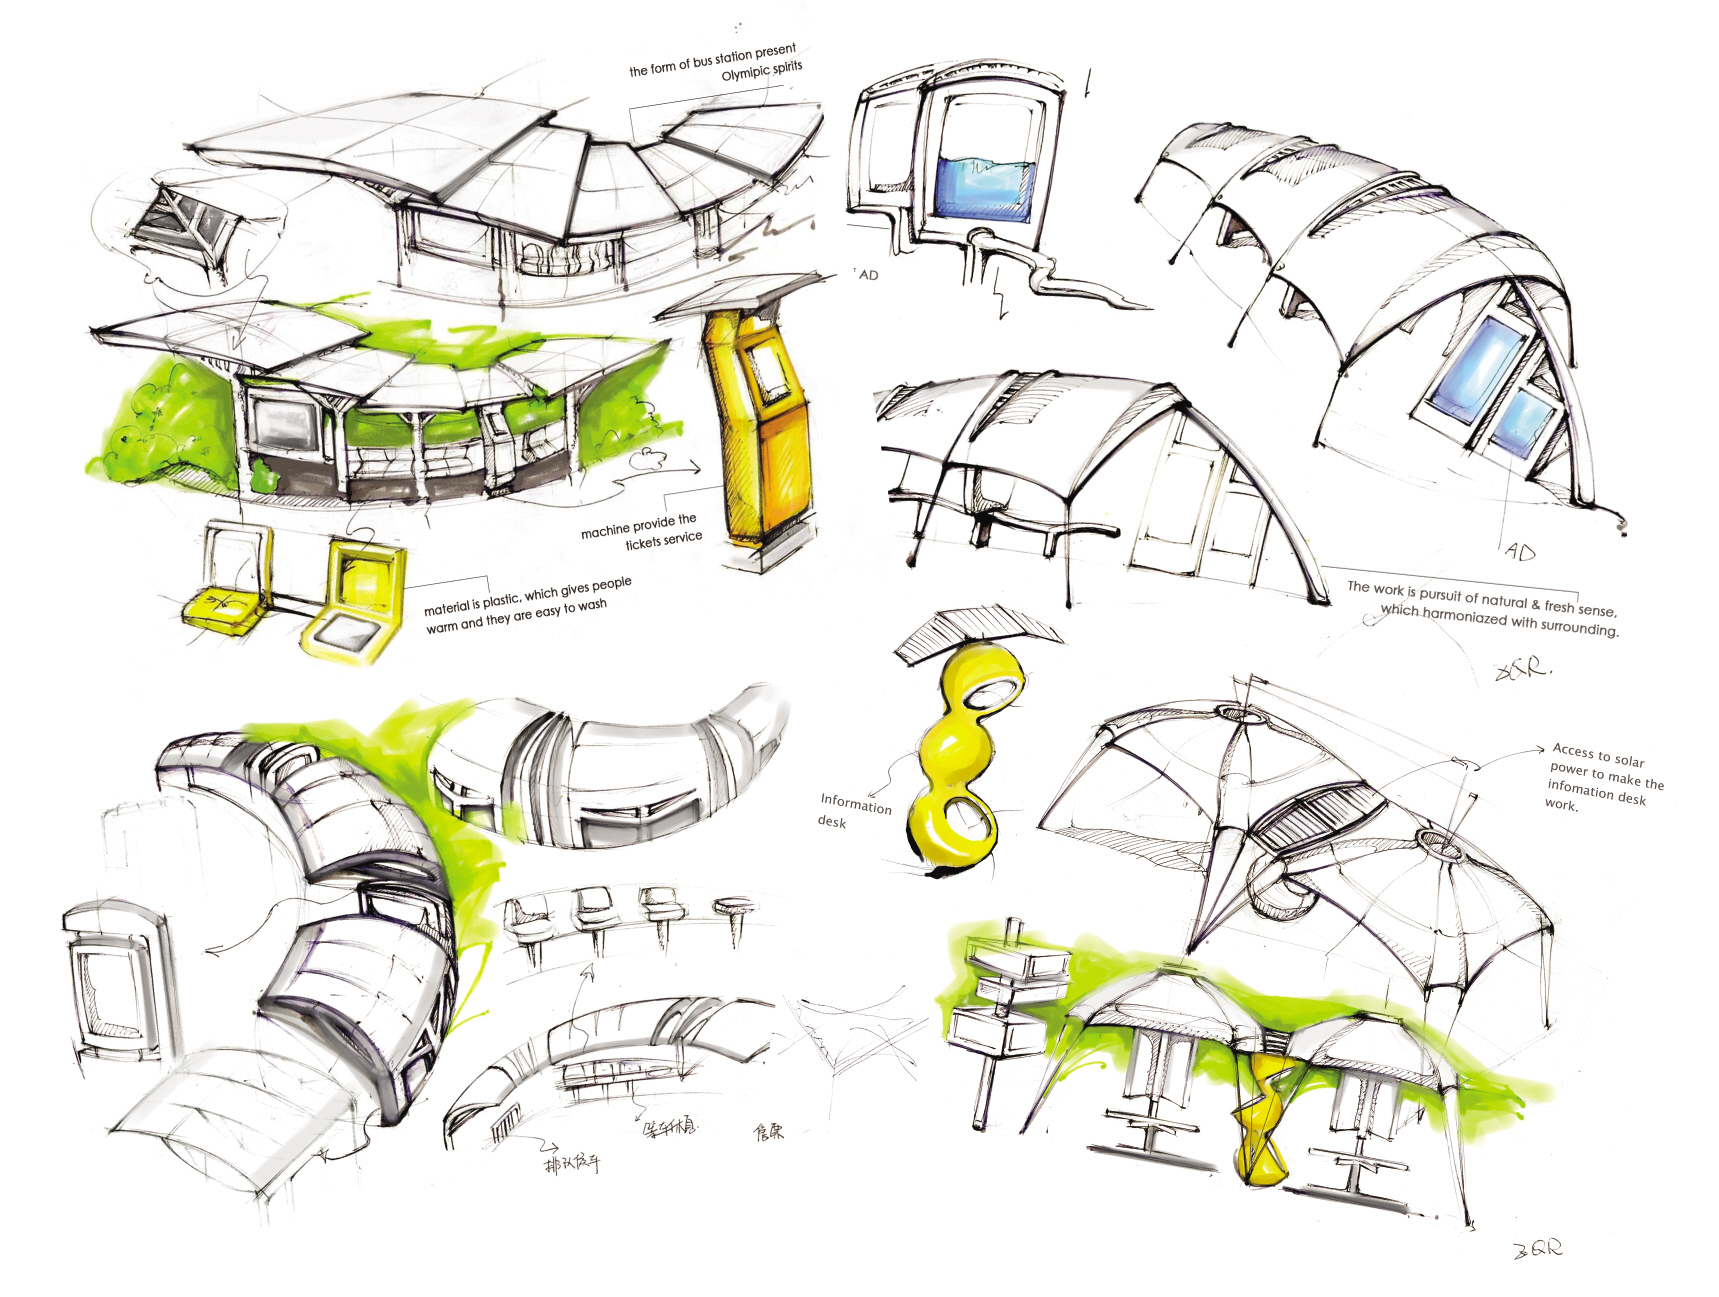 2008 Beijing Olympic Bus Station Design By Qianru Zhang At